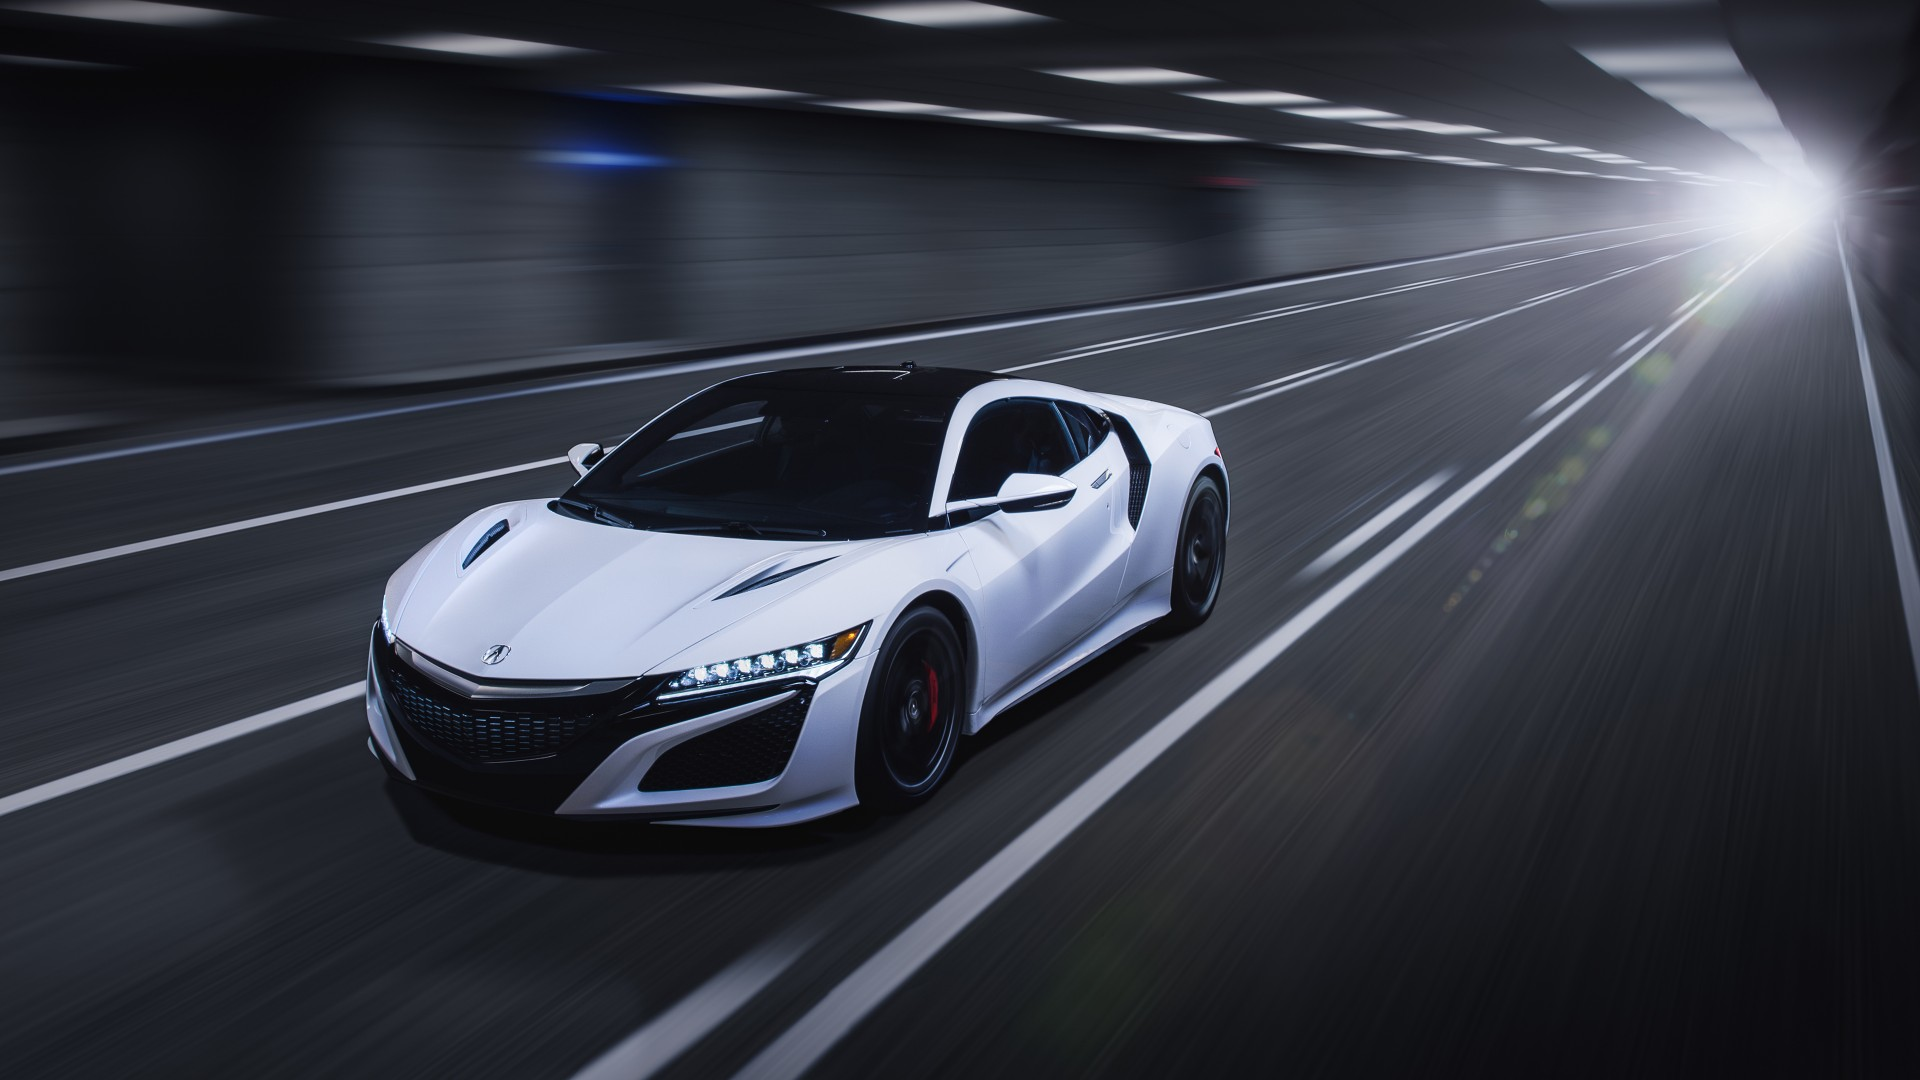 Acura nsx 4k 2 wallpaper hd car wallpapers id 11937 - Wallpaper hd 4k car ...